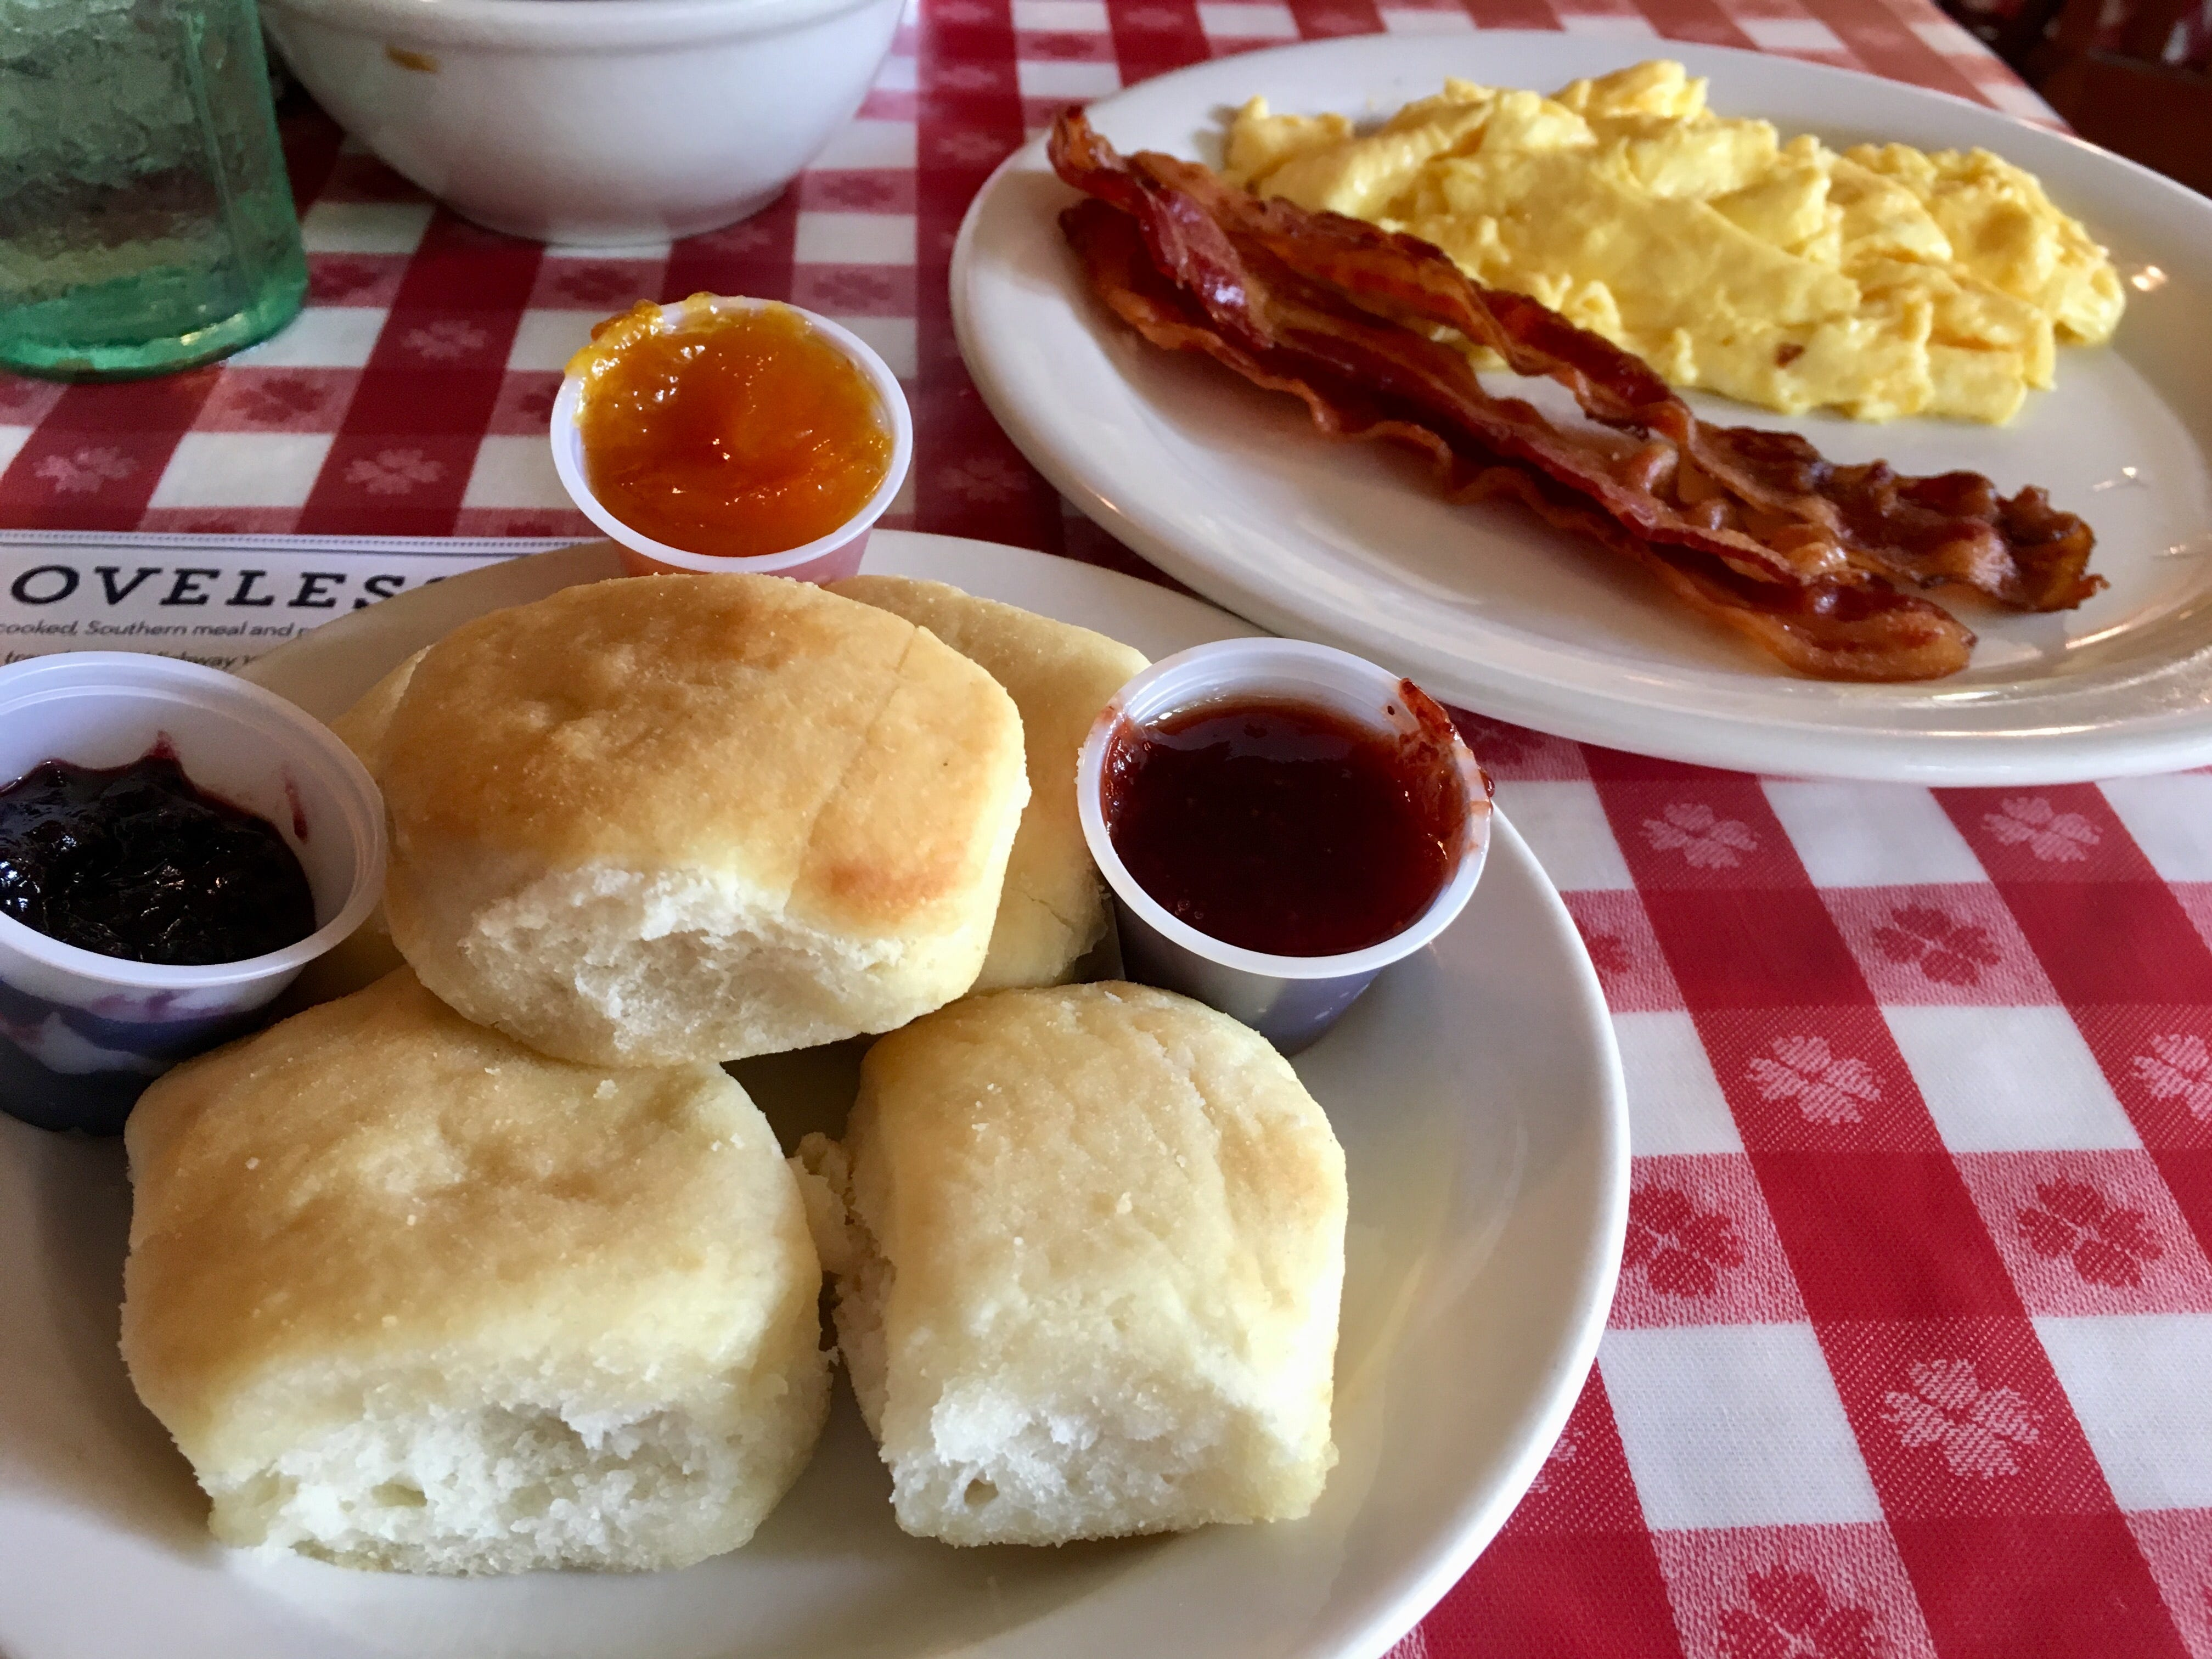 Biscuits at Loveless Cafe, which opened on Highway 100 in Bellevue in 1951 when Lon and Annie Loveless opened a place to feed biscuits and fried chicken to hungry travelers